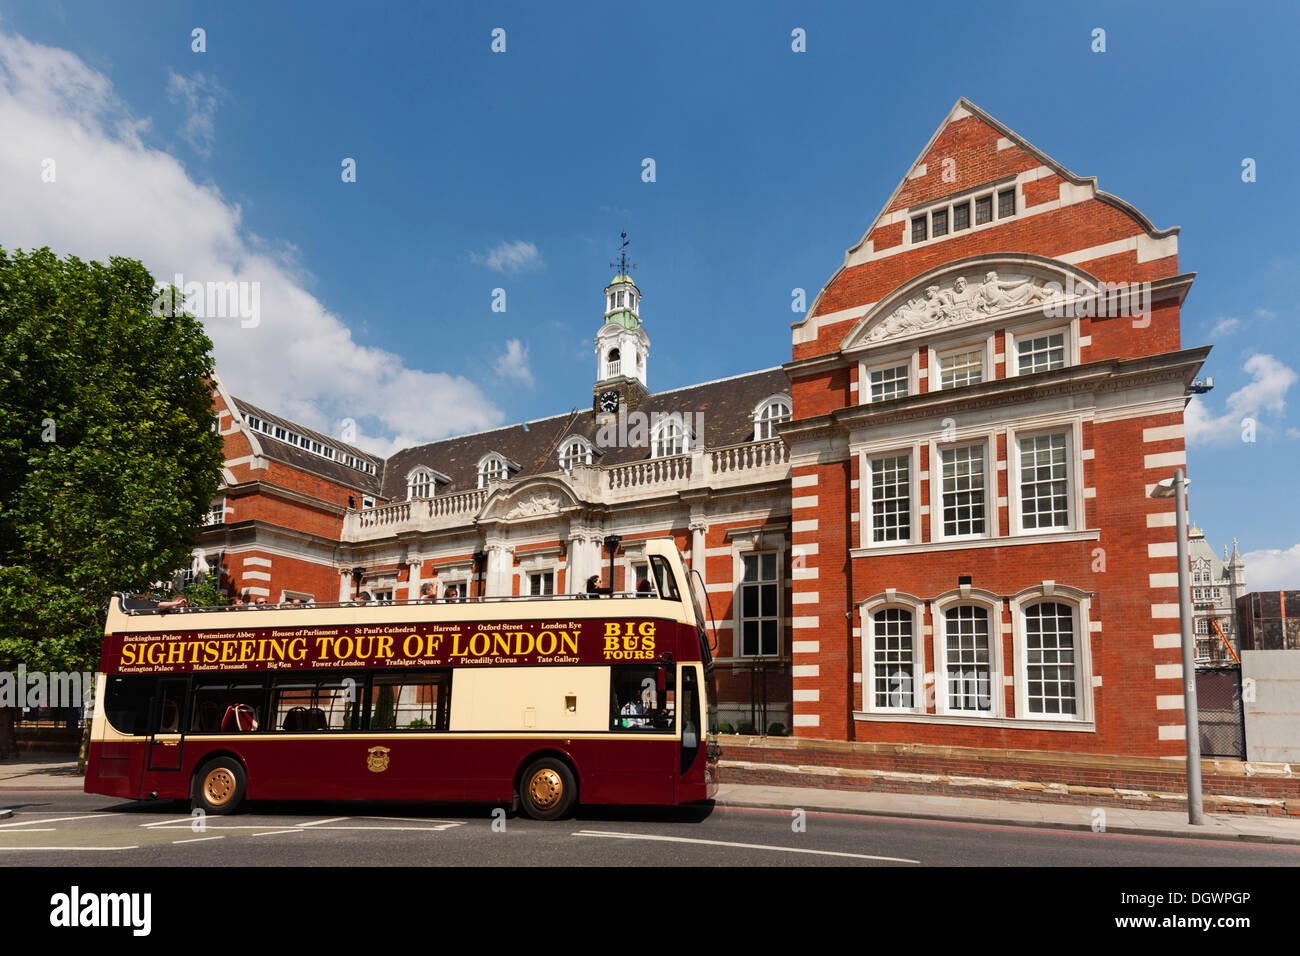 Big Bus City Tours, sightseeing bus in front of a brick building, Queen Elizabeth Street, London, England, United Kingdom - Stock Image